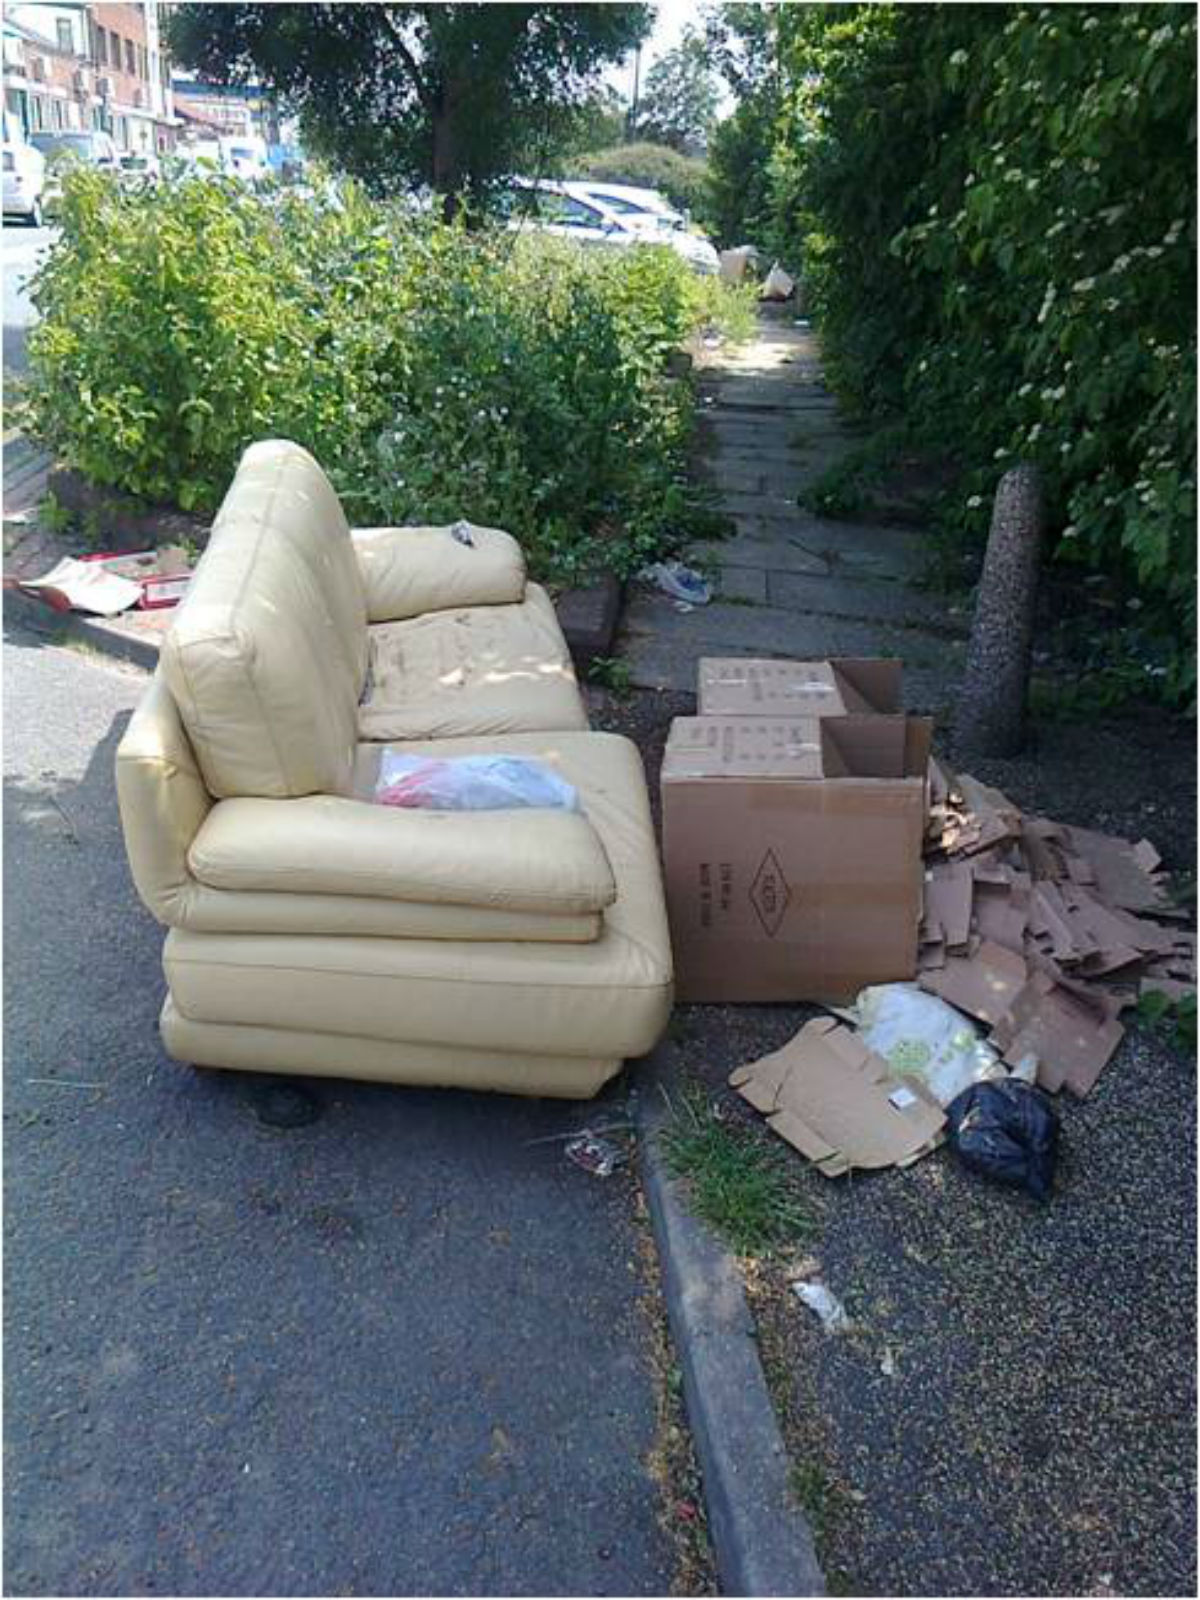 Lewisham Council urges furniture recycling this Christmas